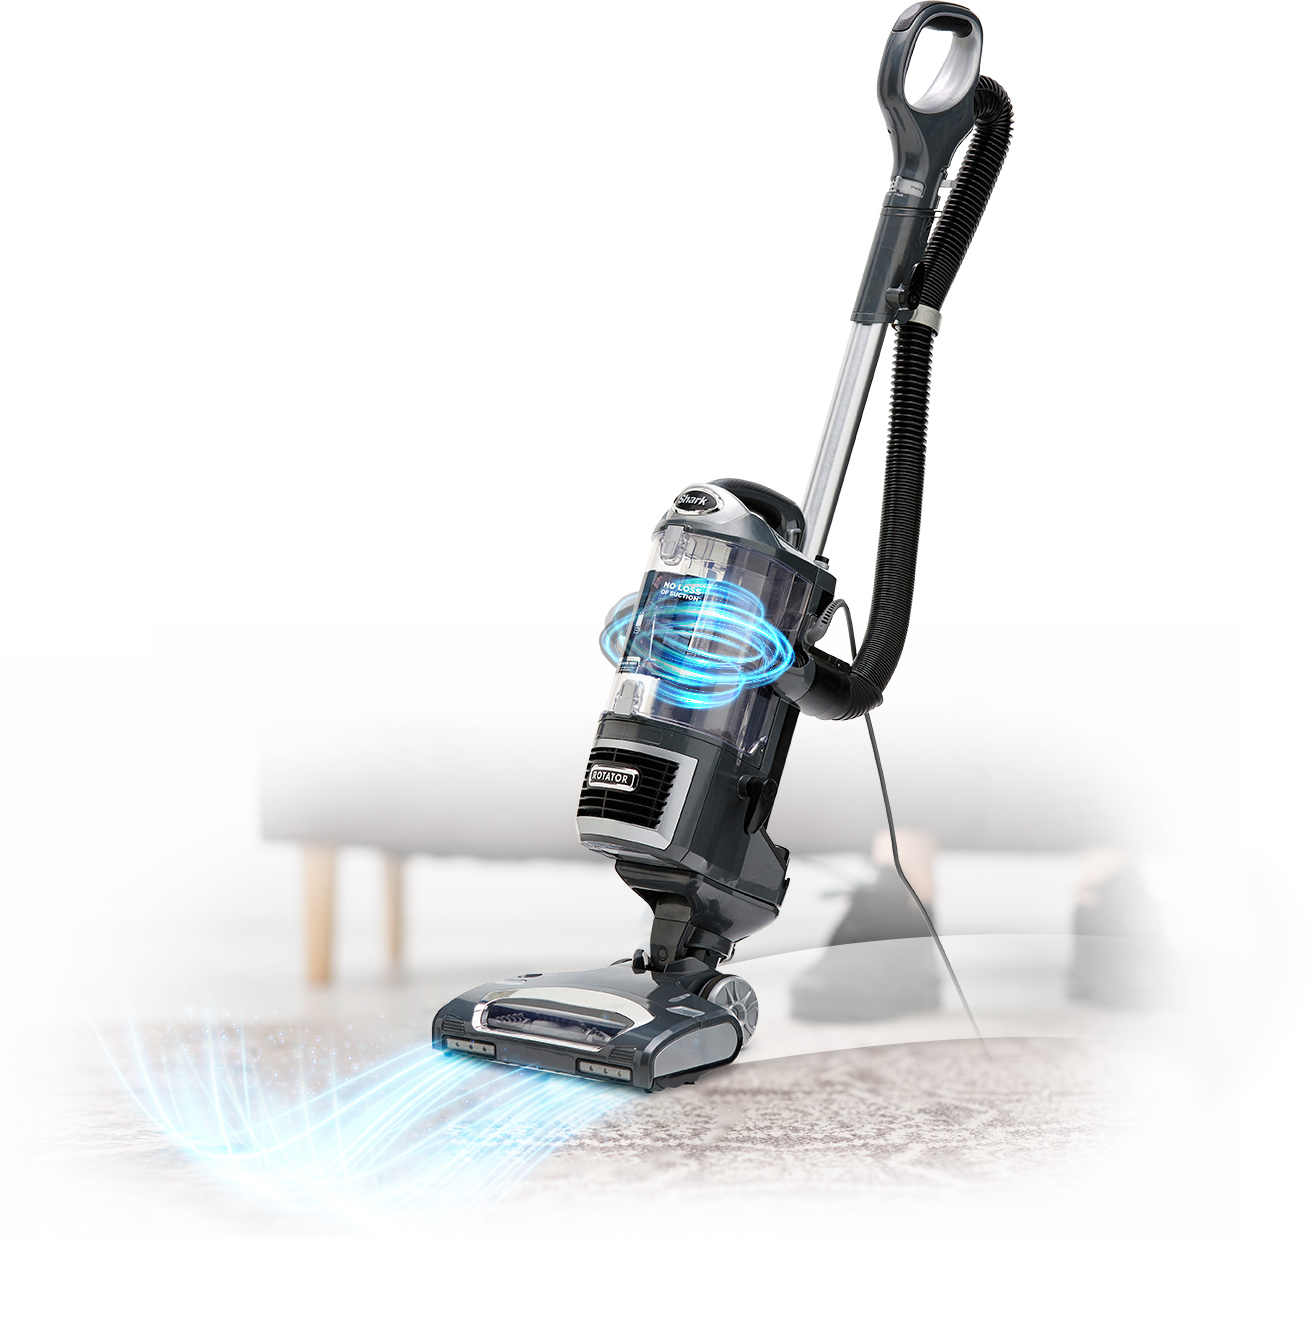 powerful suction and versatility